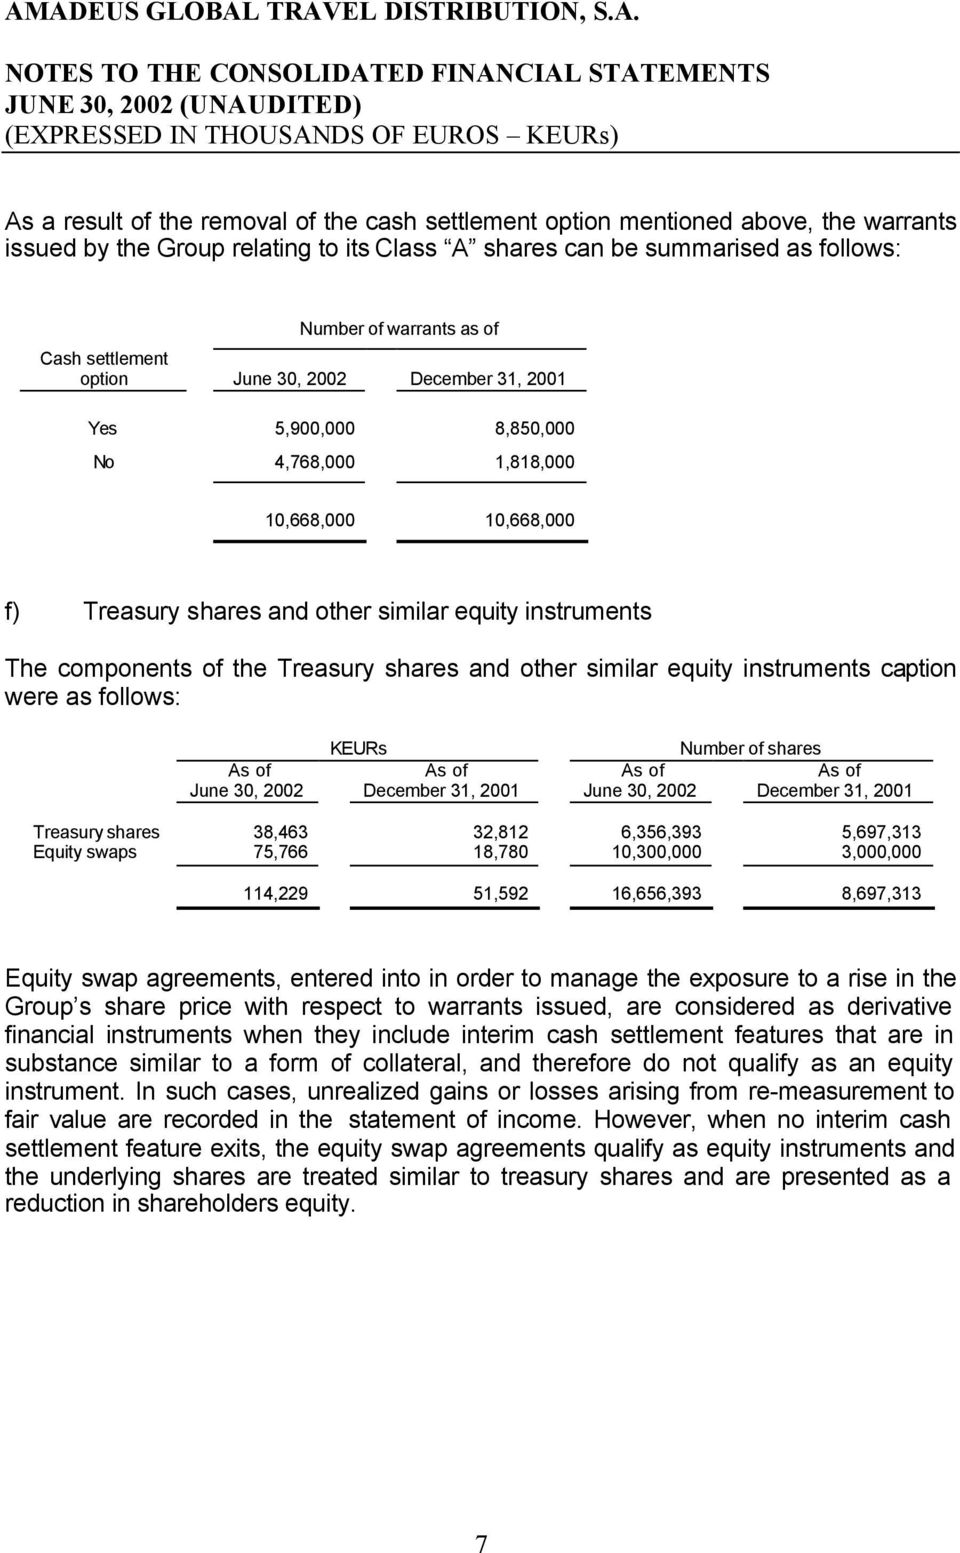 Treasury shares and other similar equity instruments caption were as follows: As of June 30, 2002 KEURs As of December 31, 2001 As of June 30, 2002 Number of shares As of December 31, 2001 Treasury